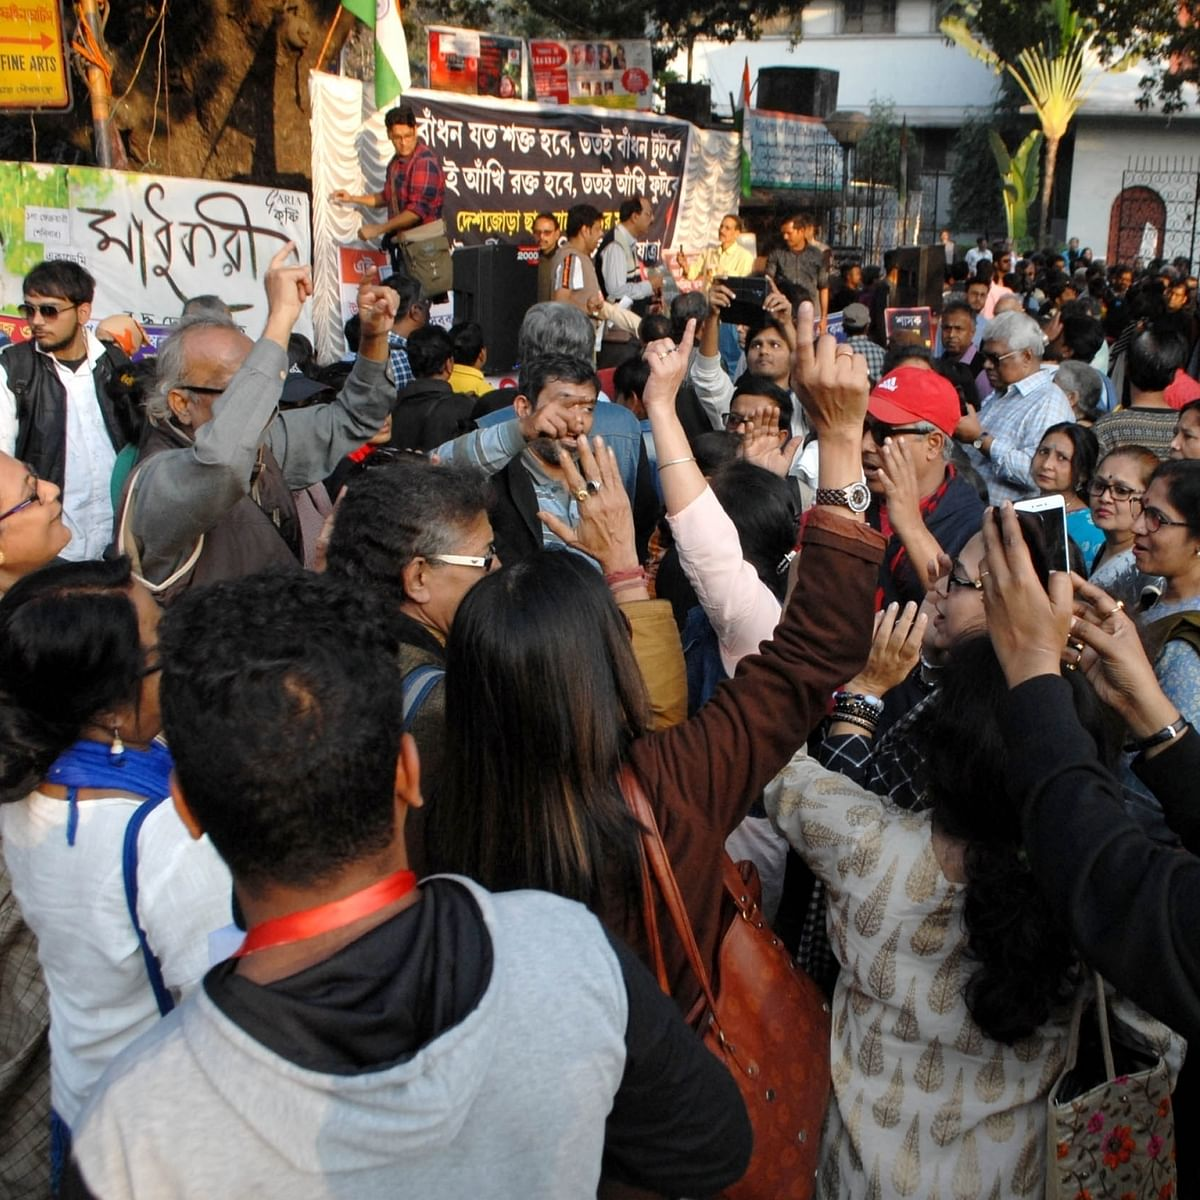 Theatre artistes hold a protest rally against Communalism, in Kolkata (IANS Photo)